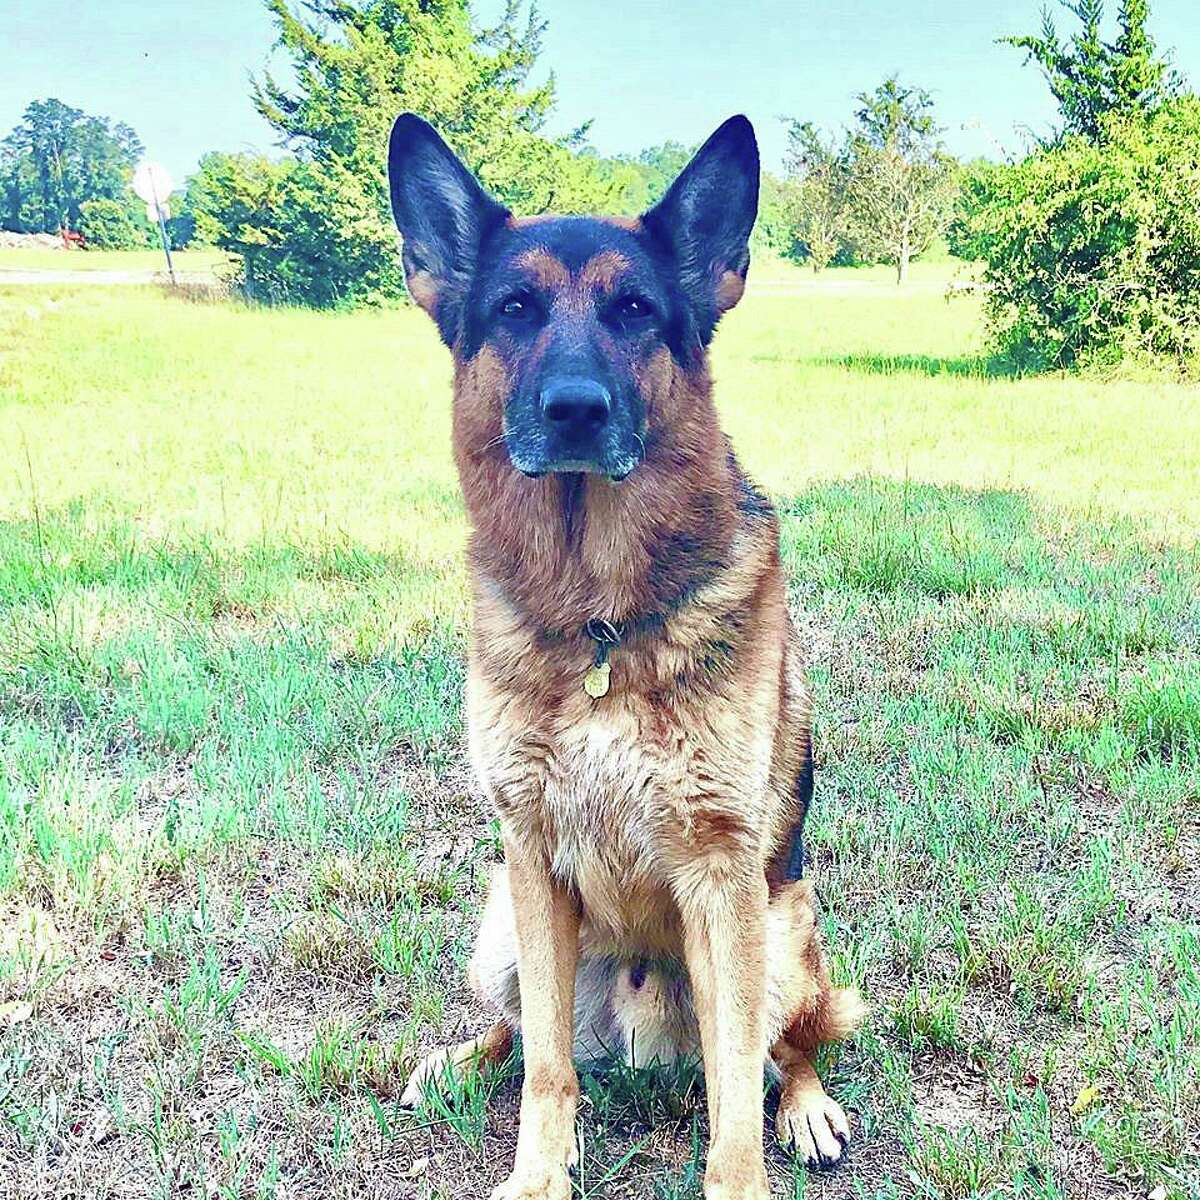 on Thursday, Aug. 6, 2020, K9 Brody, his handler, and other state troopers tracked for nearly one mile in almost 90-degree heat, both on marked paths and through the woods, until locating the lost hiker a short time later. K9 Brody is an eight-year-old German shepherd assigned to a trooper at Troop E in Montville. Brody is the most senior patrol K9 within the State Police.